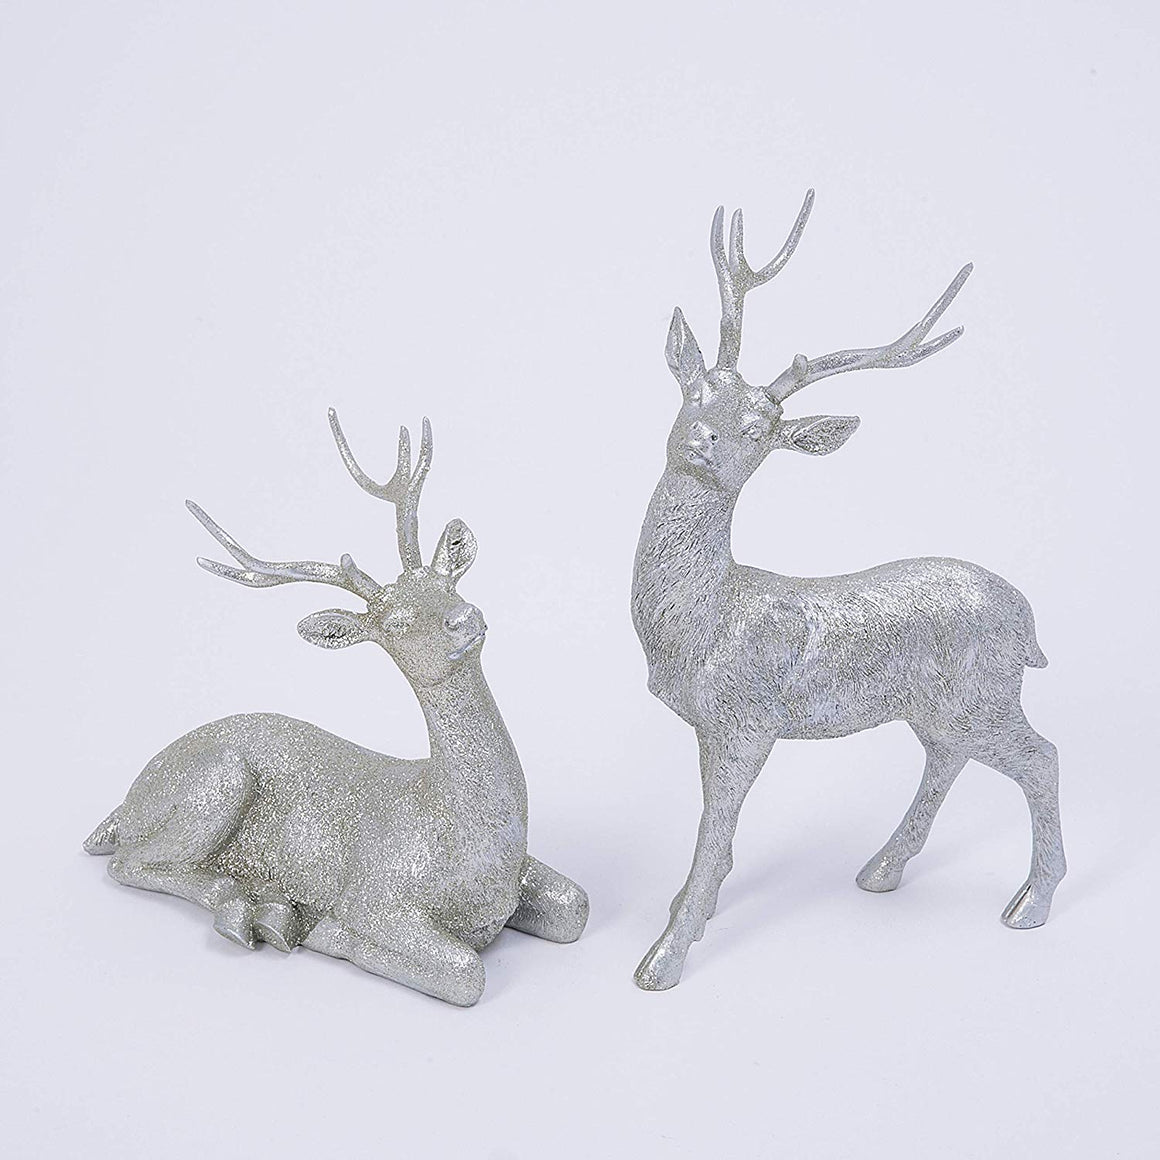 GER Champagne Silver Glittered Christmas Deer Set - 8.5 Inches and 12 Inches High - Holiday Decor Reindeer